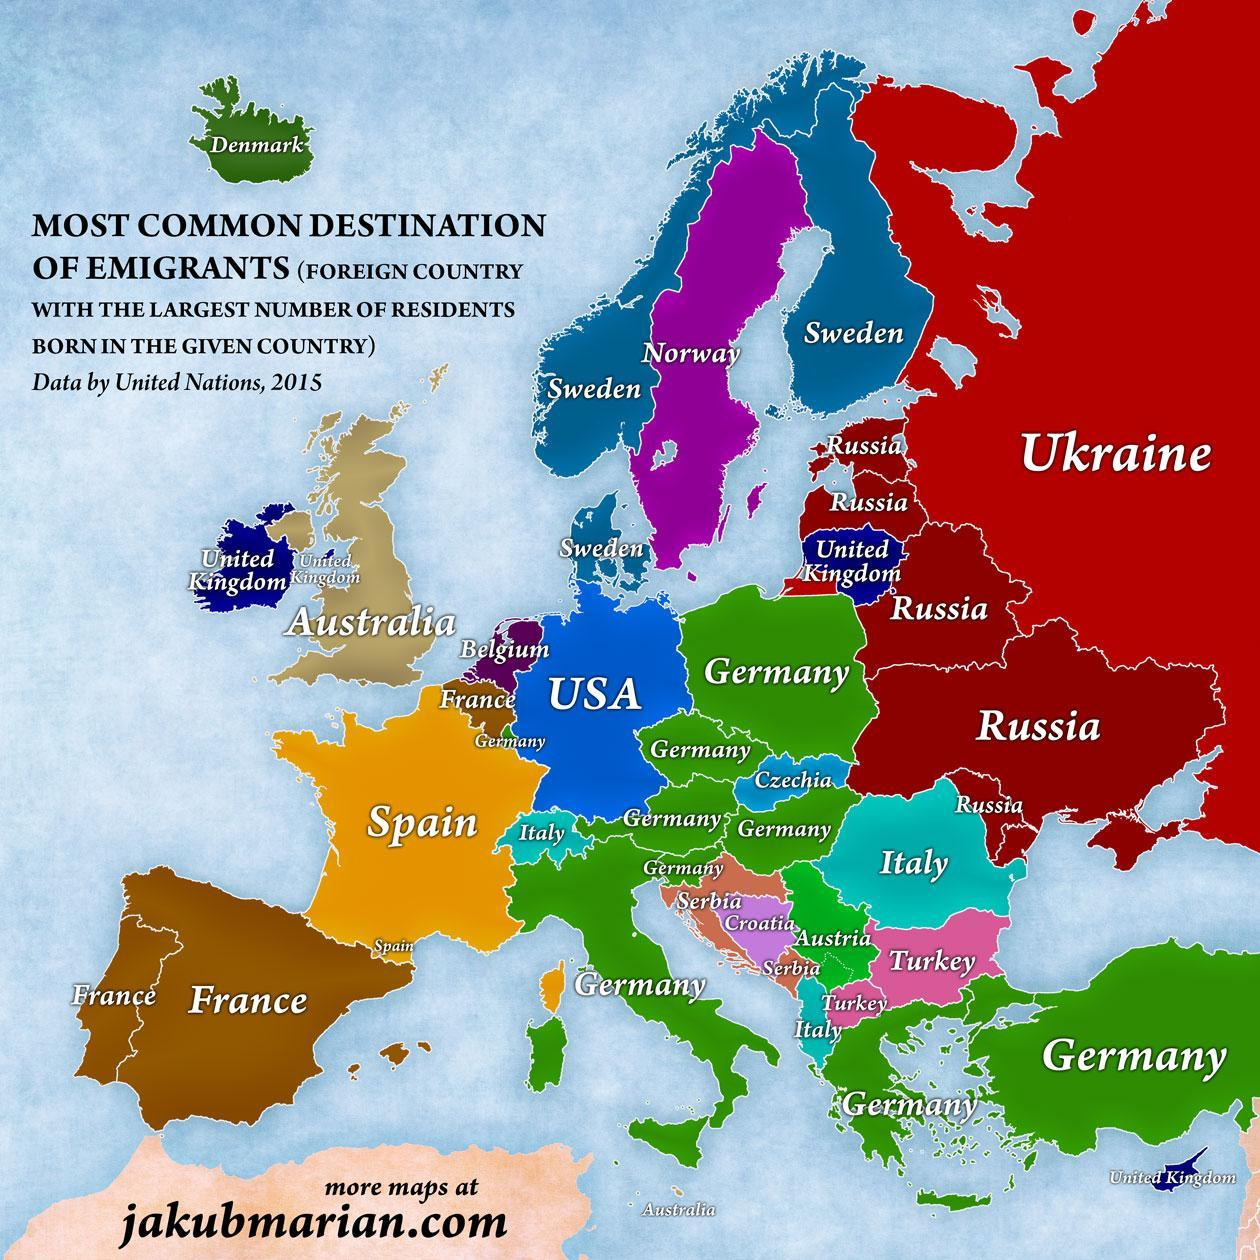 Map Of Europe Showing Italy.A Map Of Europe According To The Number Of People Living Abroad